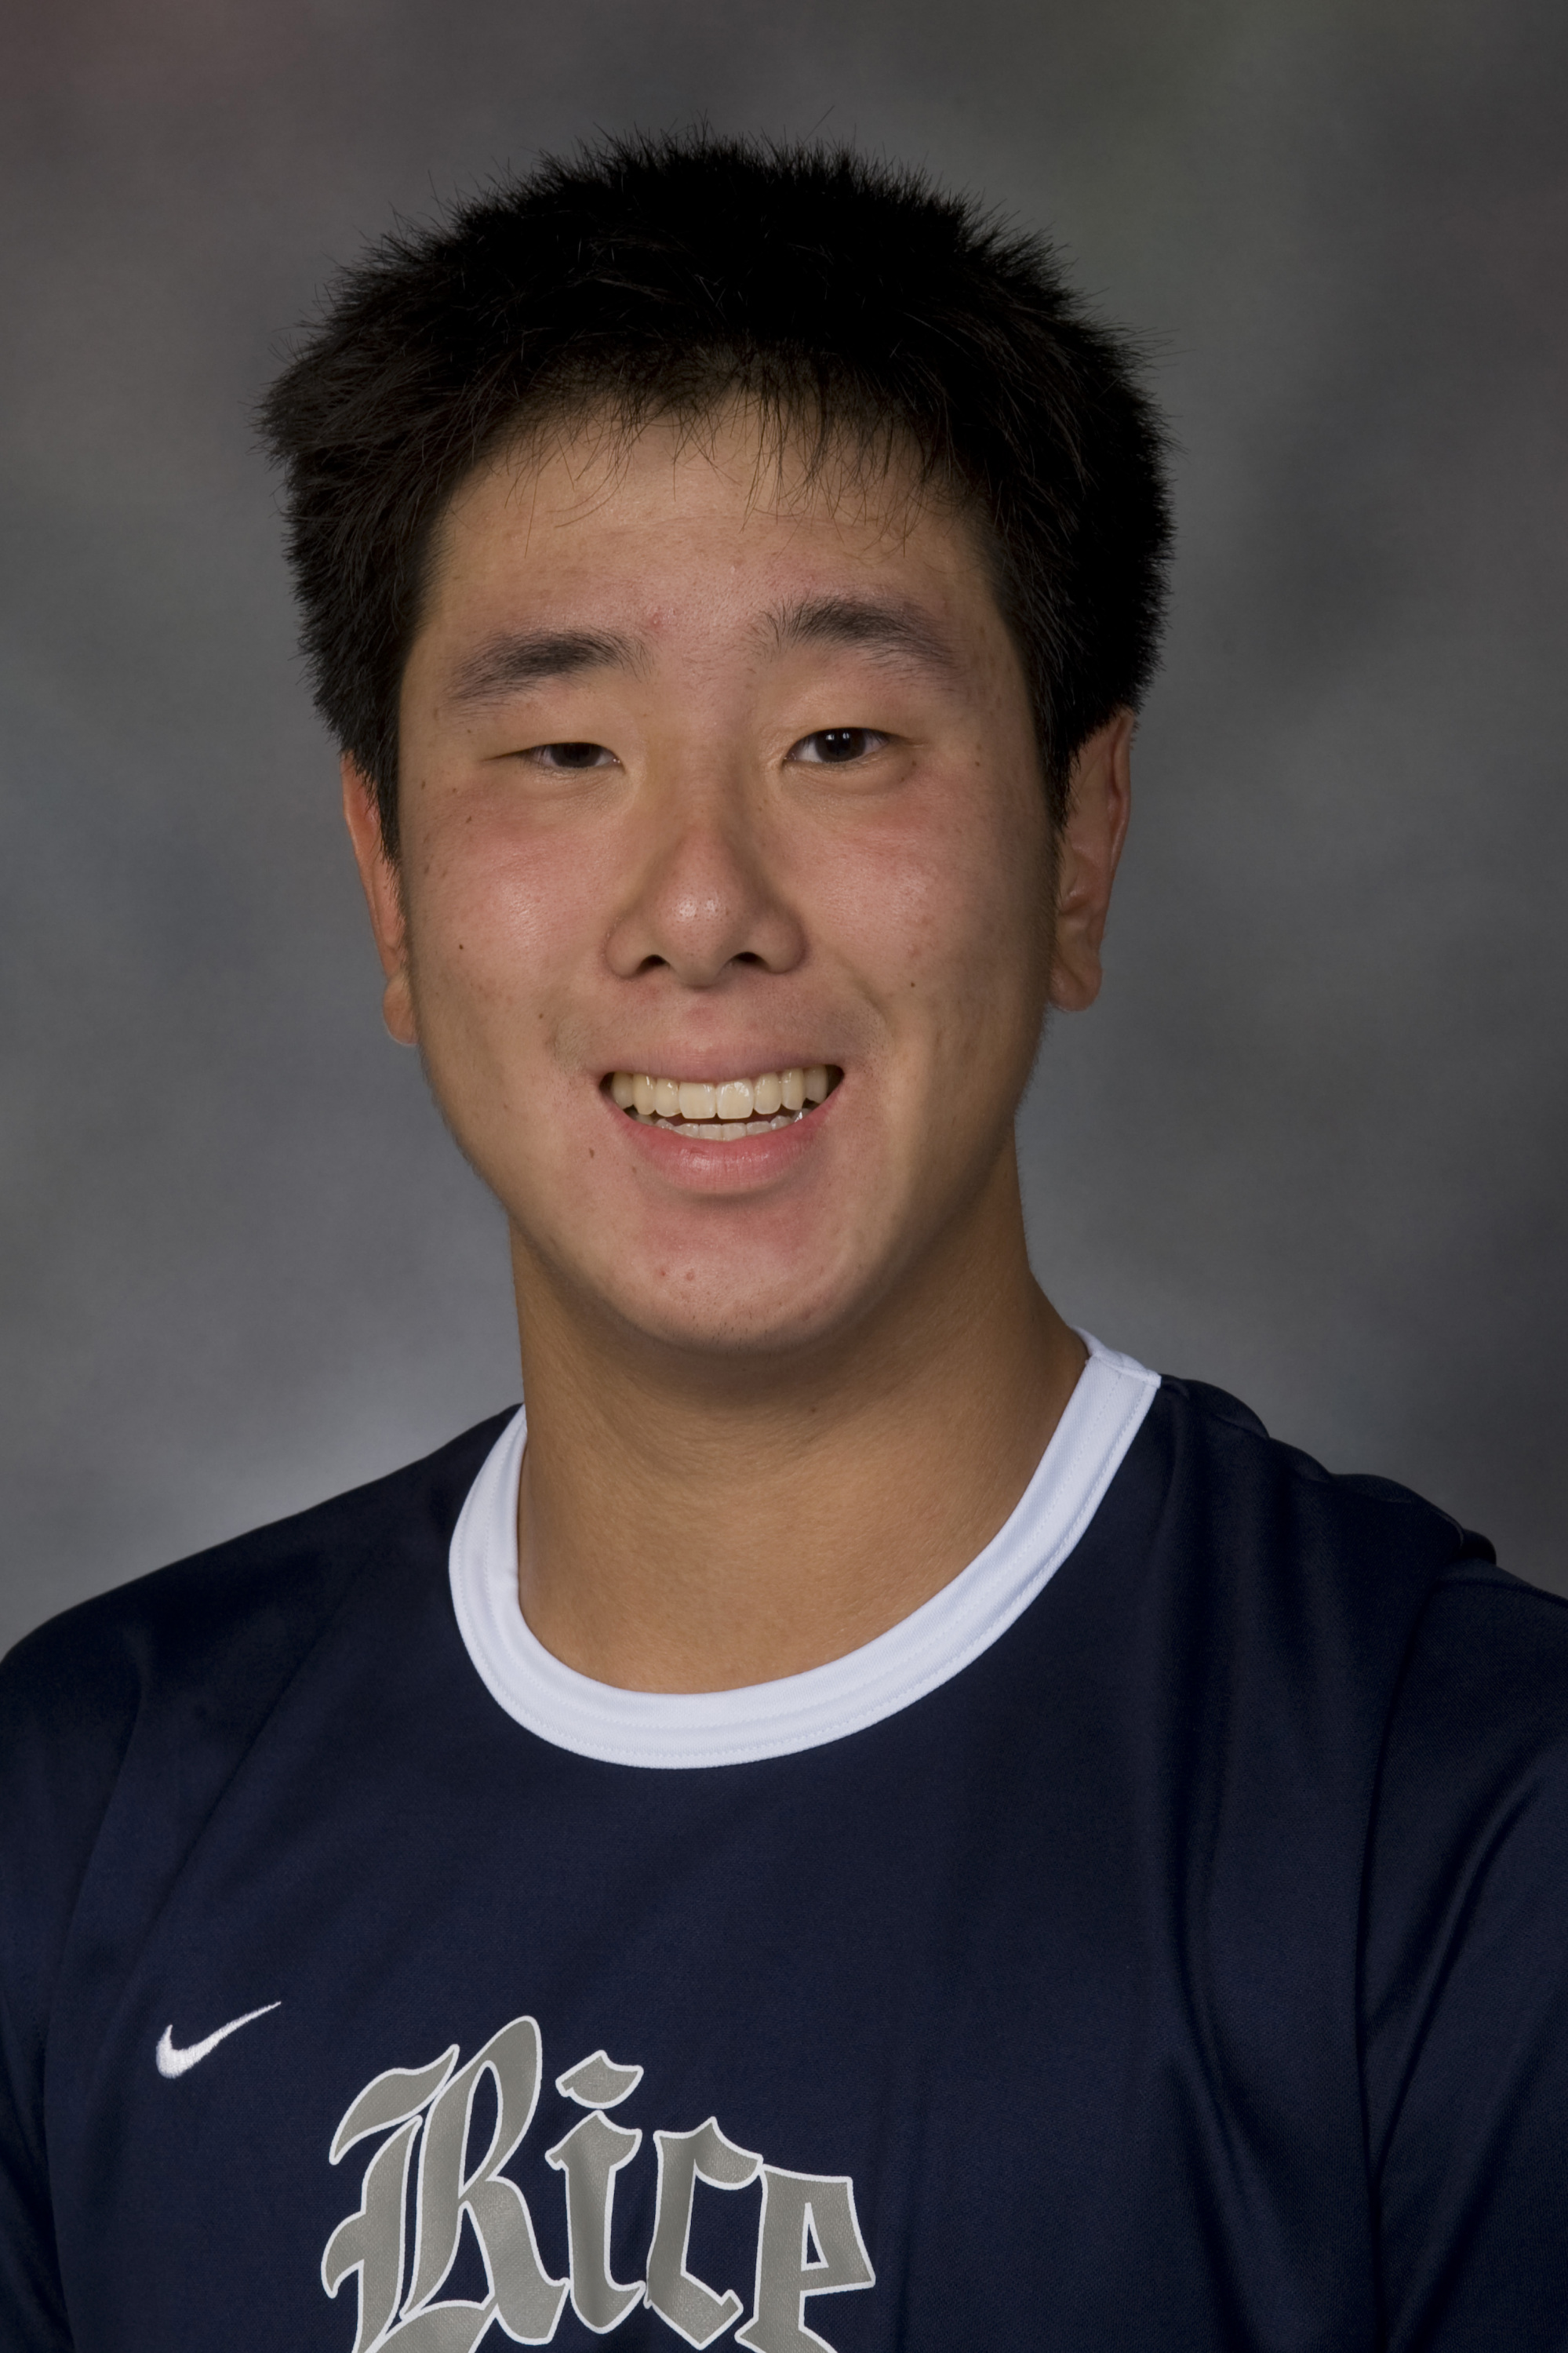 Jonathan Chang clinched the win with his victory at No. 6 singles